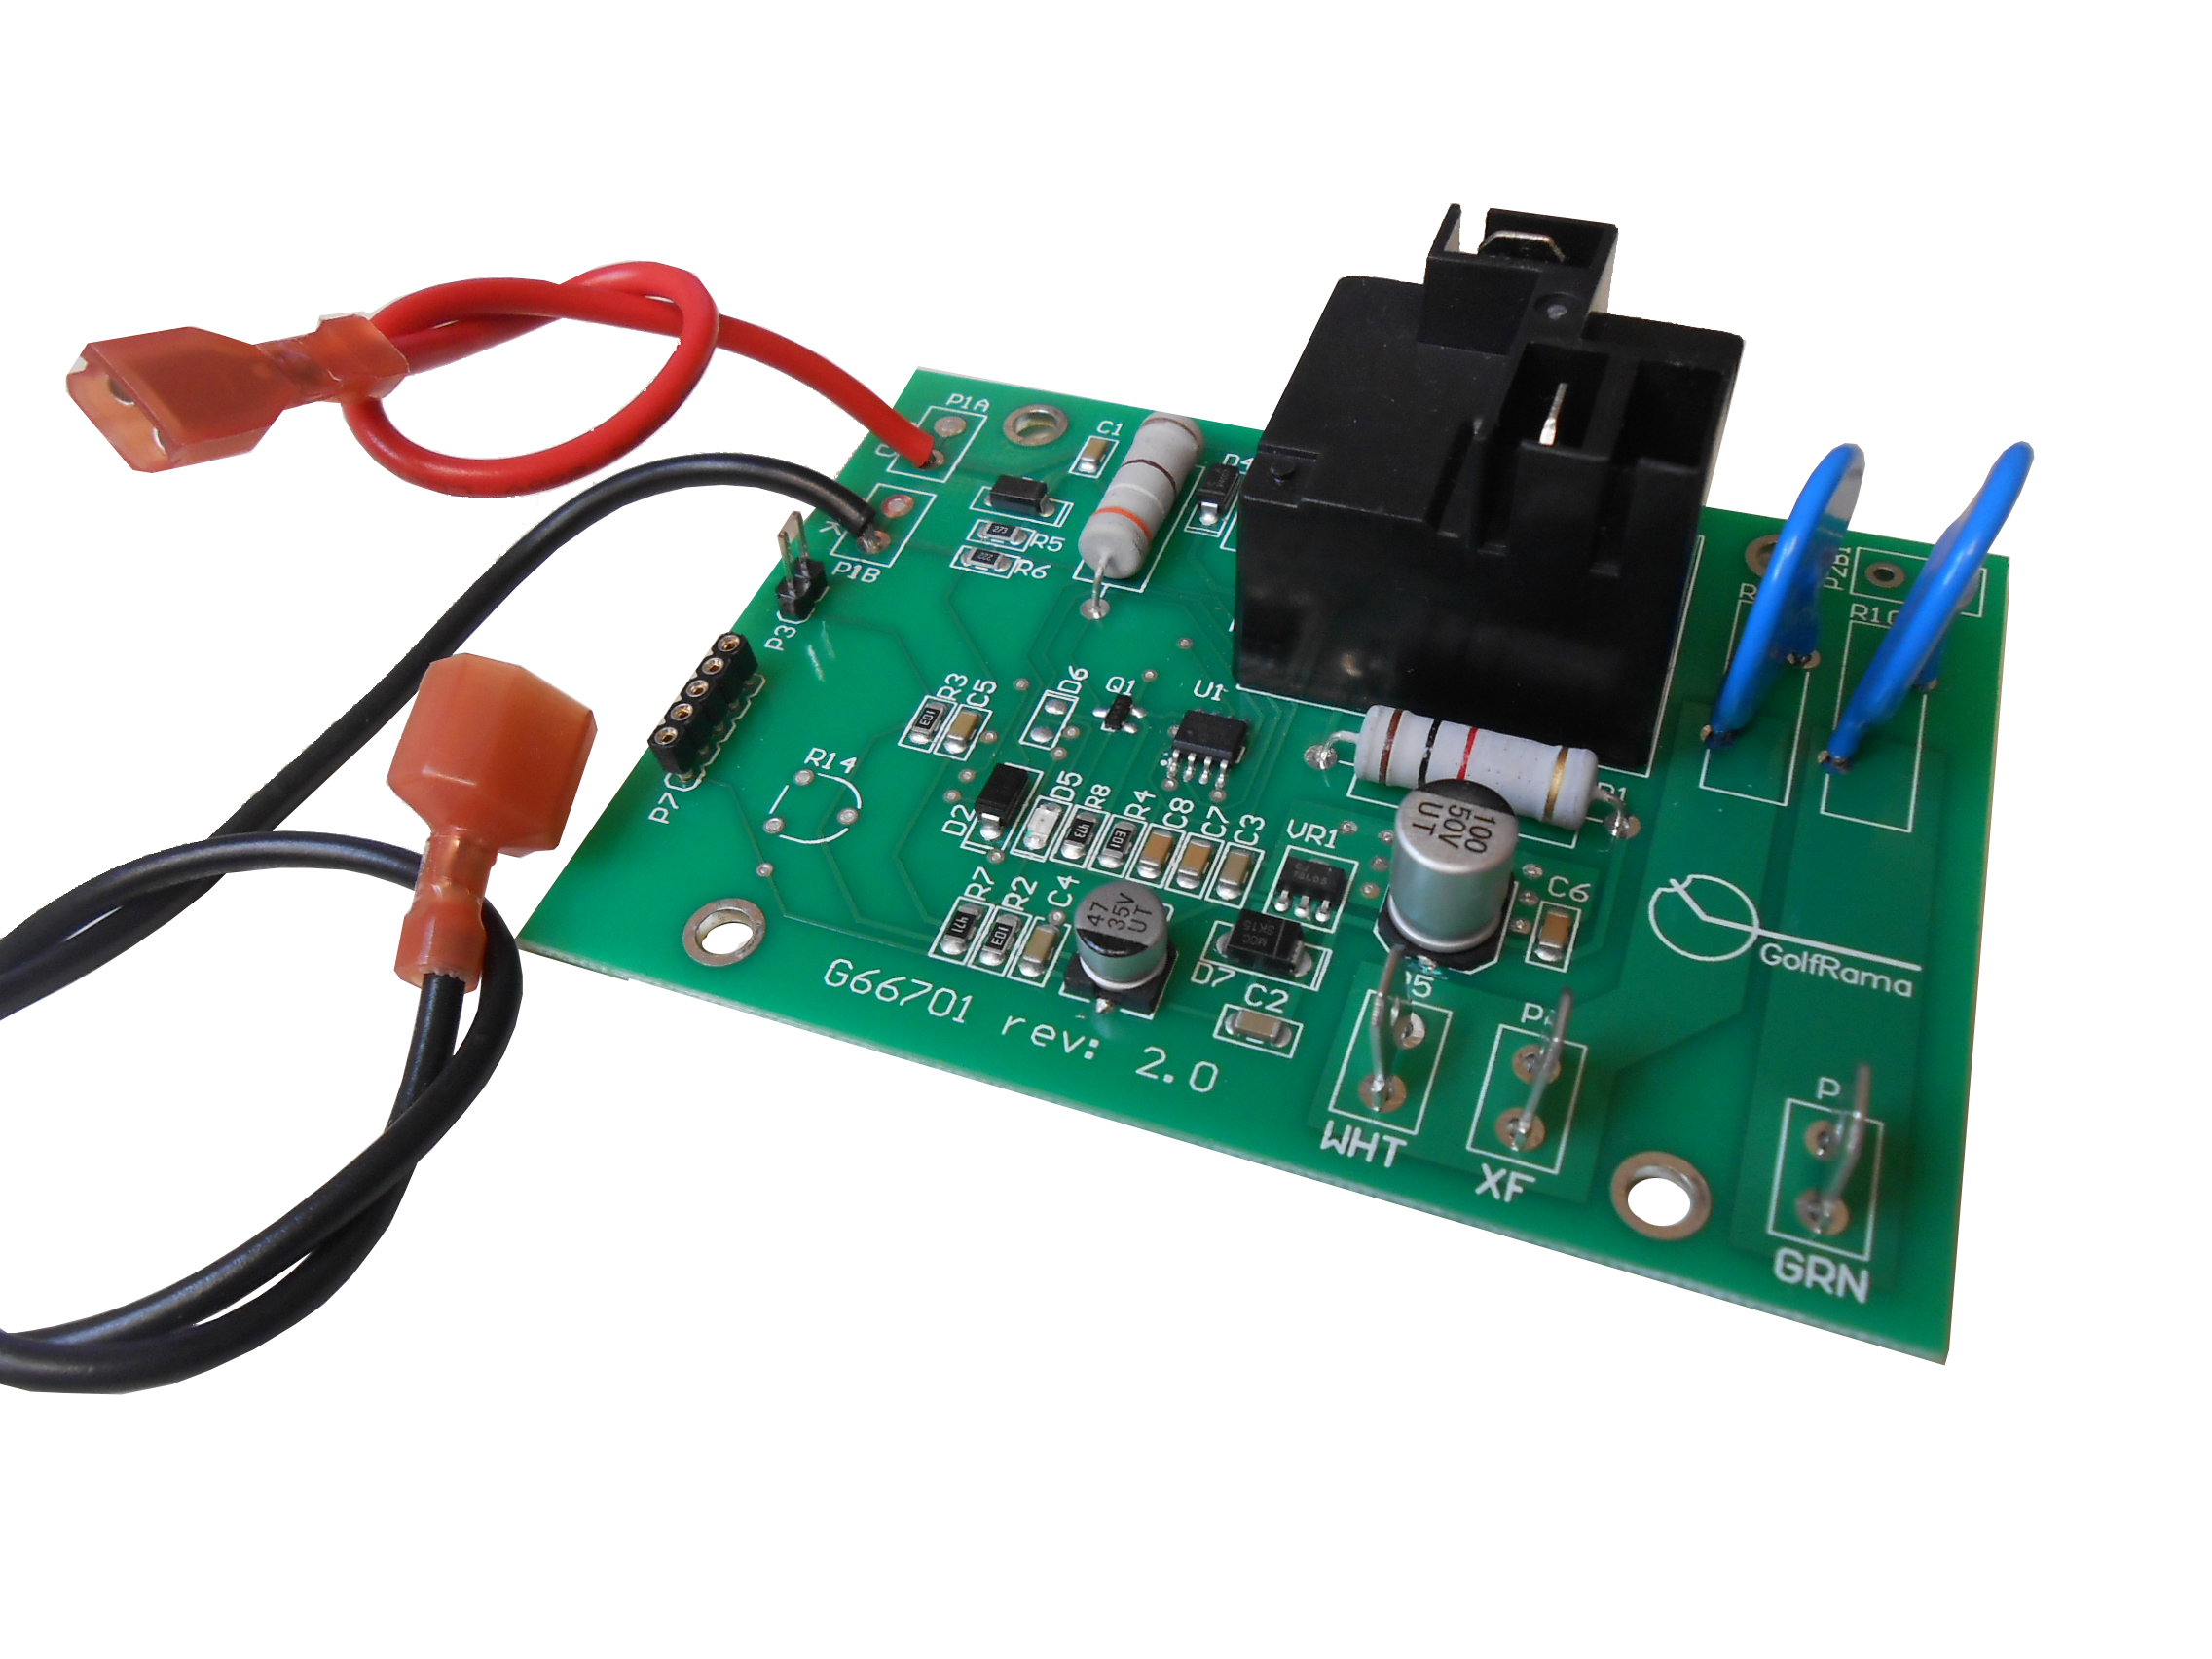 Wiring Diagram For 36 Volt Power Wise Charger Board - ~ Wiring ...